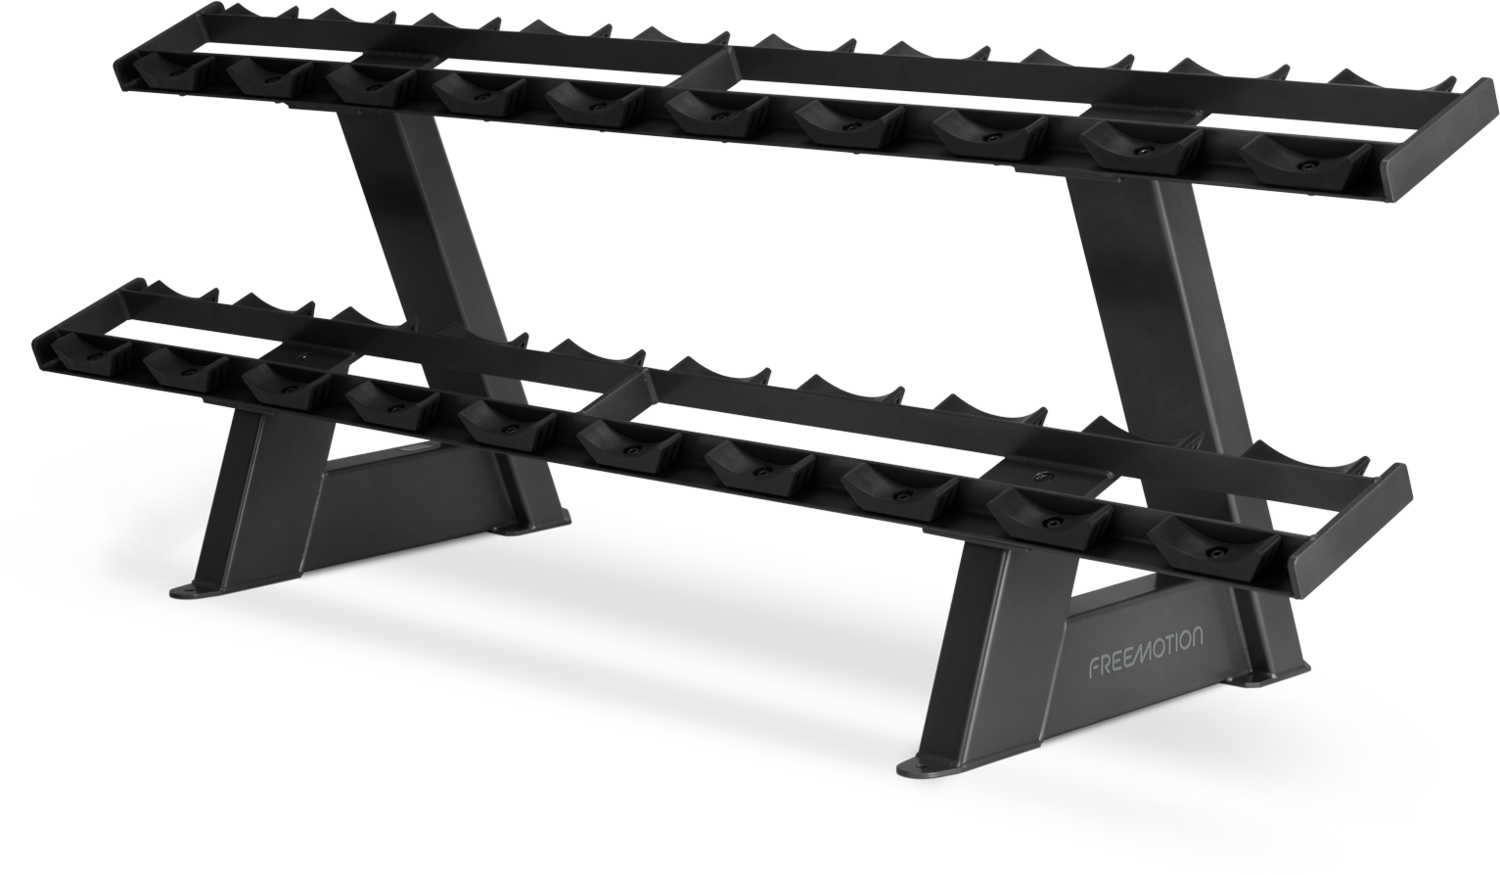 Freemotion EPIC Twin Tier Dumbbell Rack